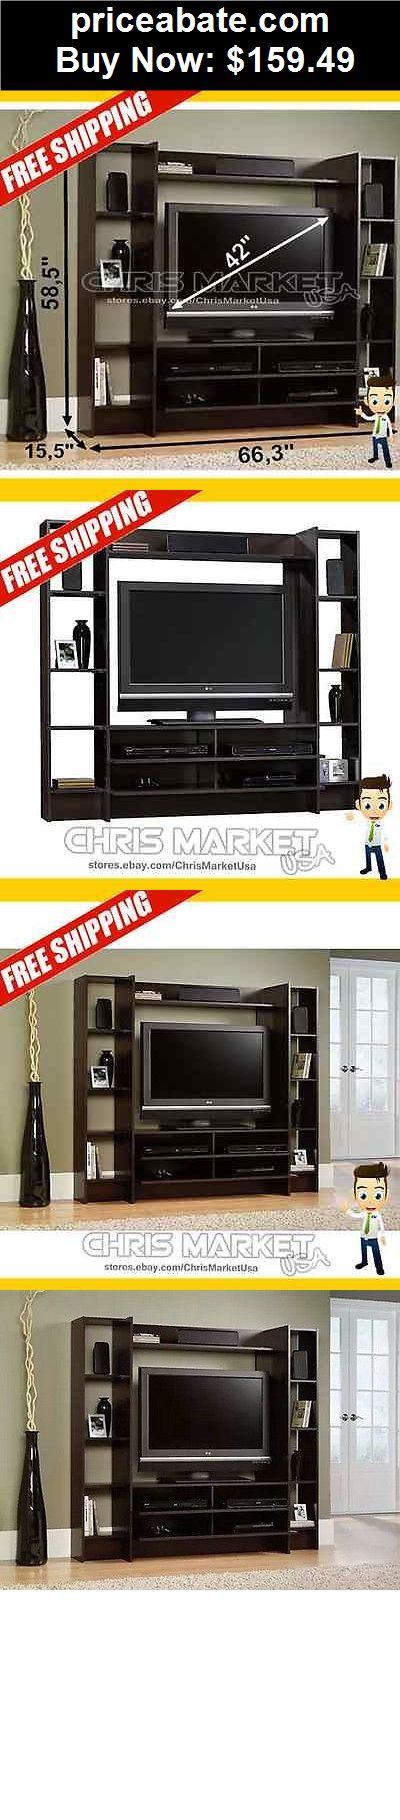 Furniture: Cherry Home Entertainment Furniture Cabinet TV Stand Center Wood Storage  - BUY IT NOW ONLY $159.49